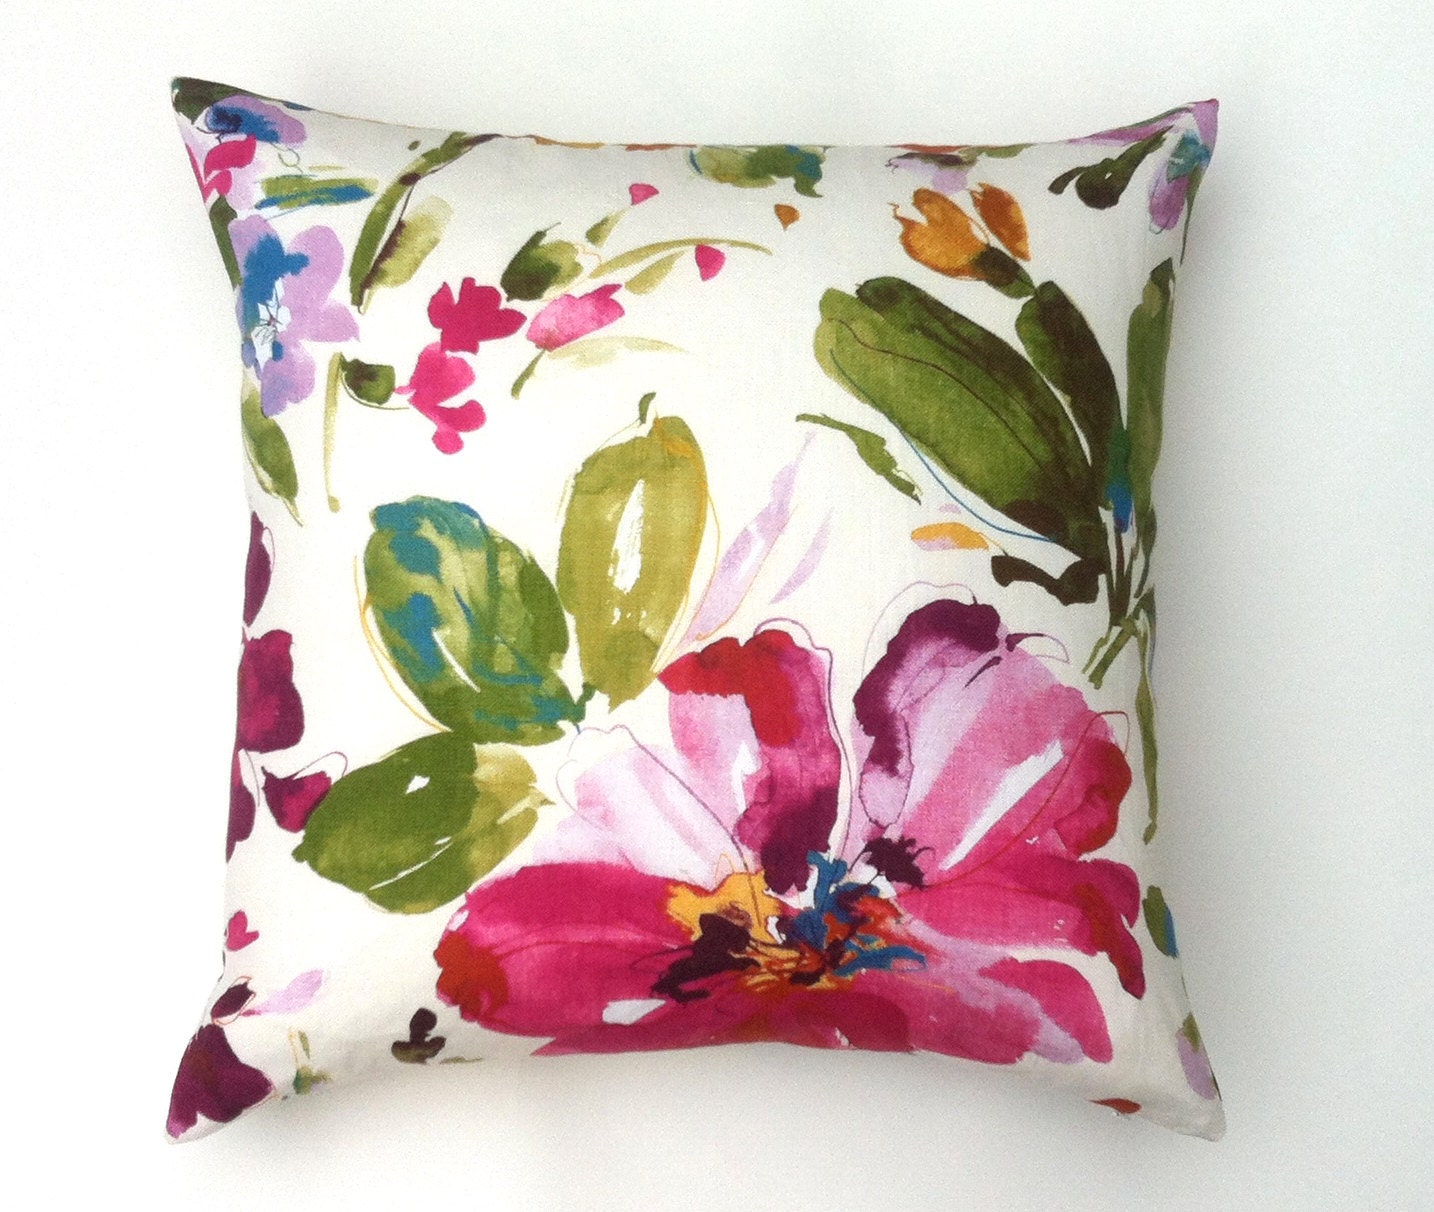 Large Flower Throw Pillow : One Chic Fuchsia Large Floral Decorative Throw Zipper Pillow